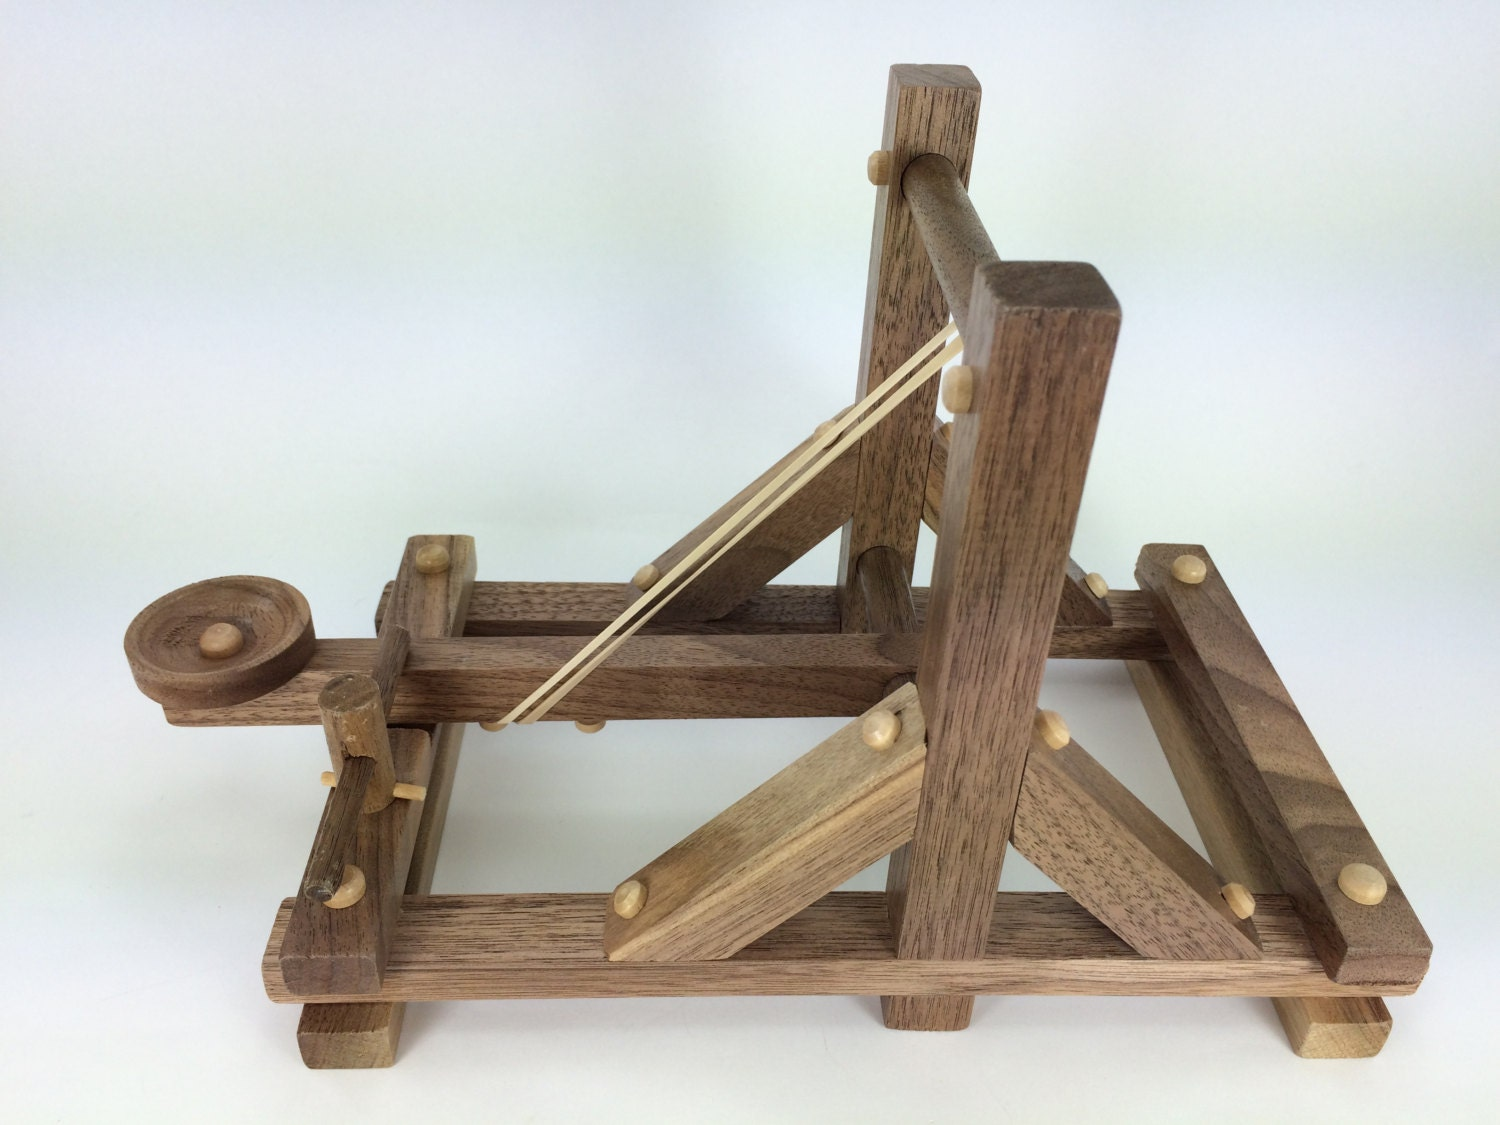 Wooden Toy Catapult Handmade wood toy solid walnut